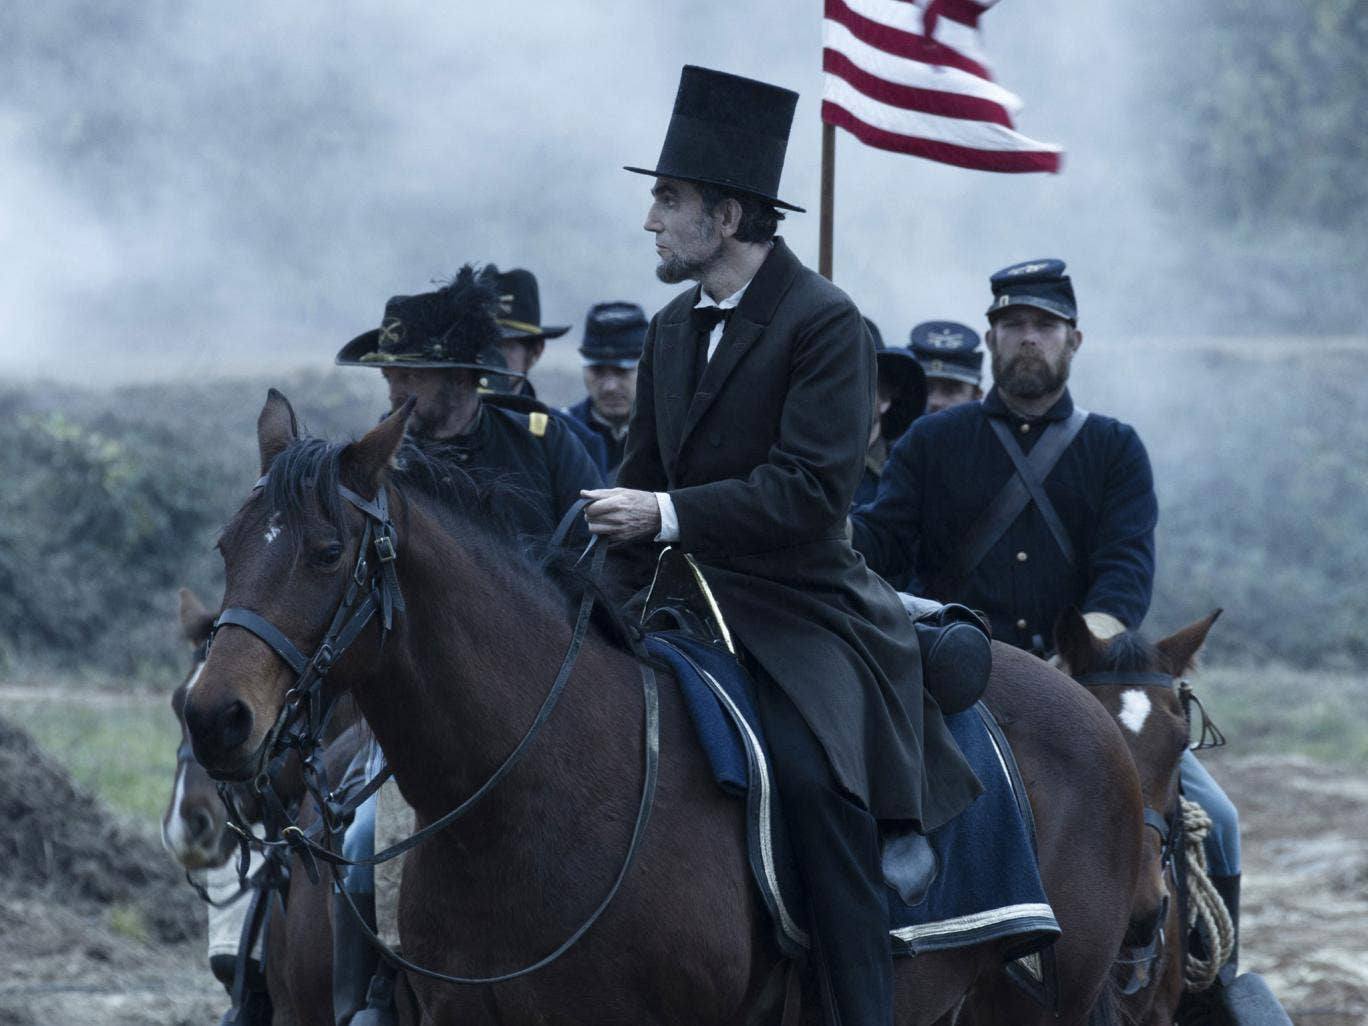 Steven Spielberg's stately drama about slavery-abolishing U.S. President Abraham Lincoln has 10 nominations, including best picture and best actor, for Daniel Day-Lewis — though no directing nomination for Spielberg.